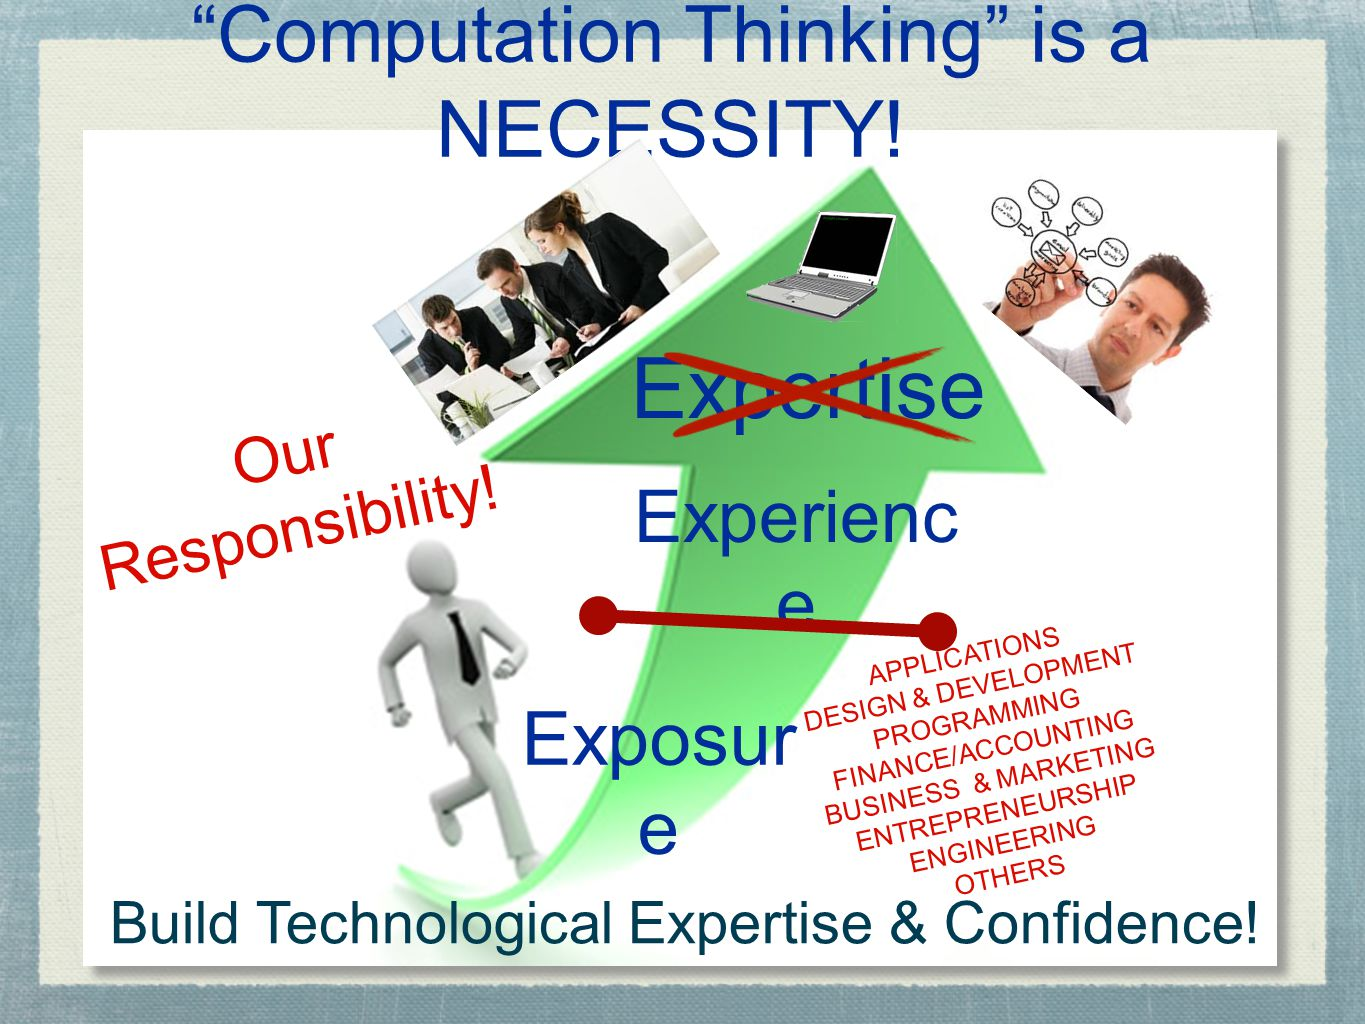 Exposur e Experienc e Expertise Computation Thinking is a NECESSITY.